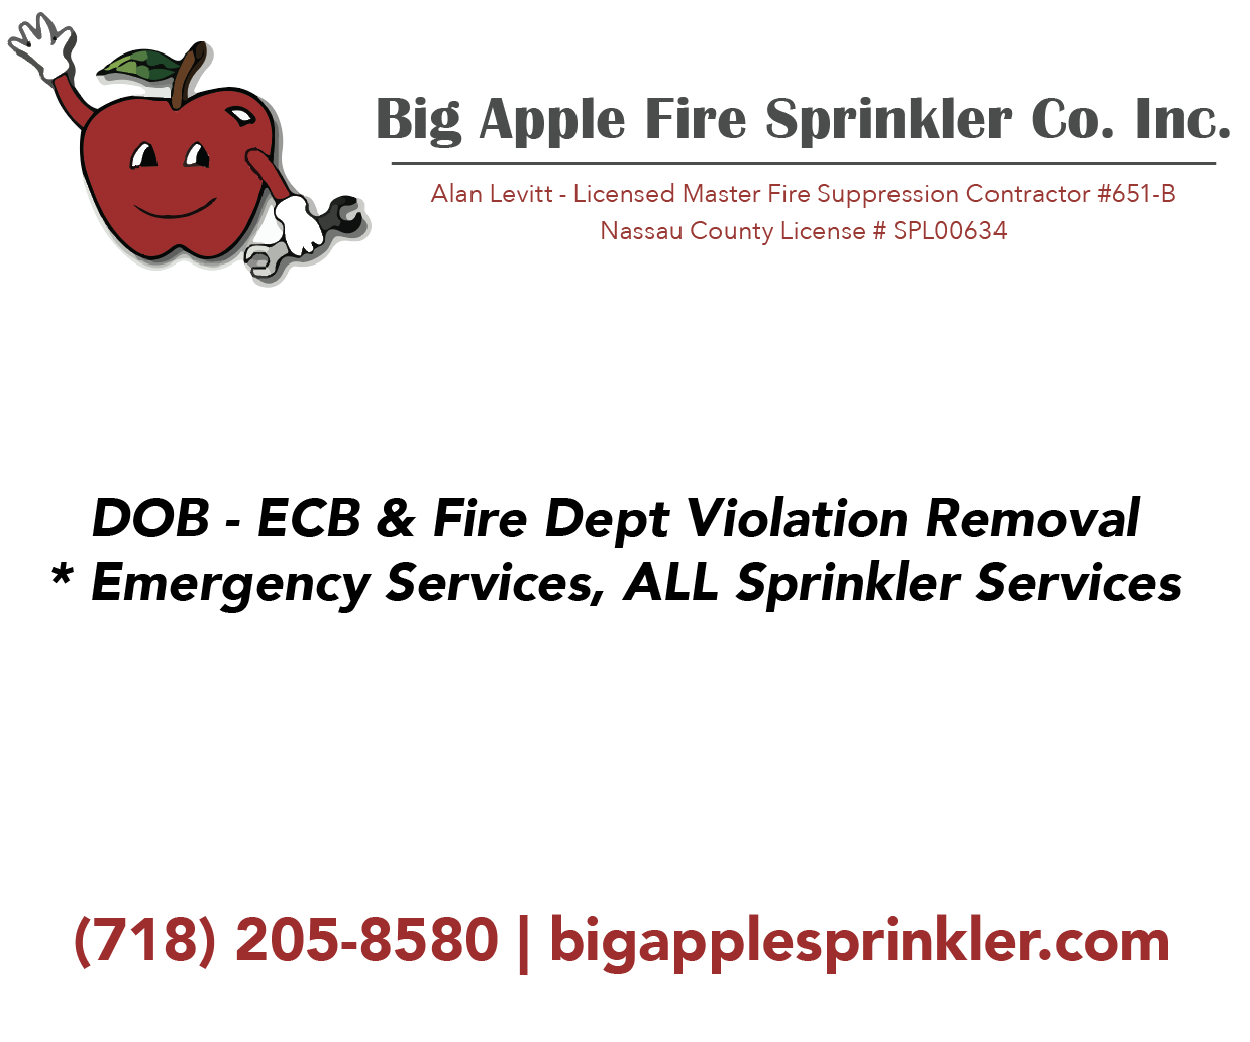 Big Apple Fire Sprinkler